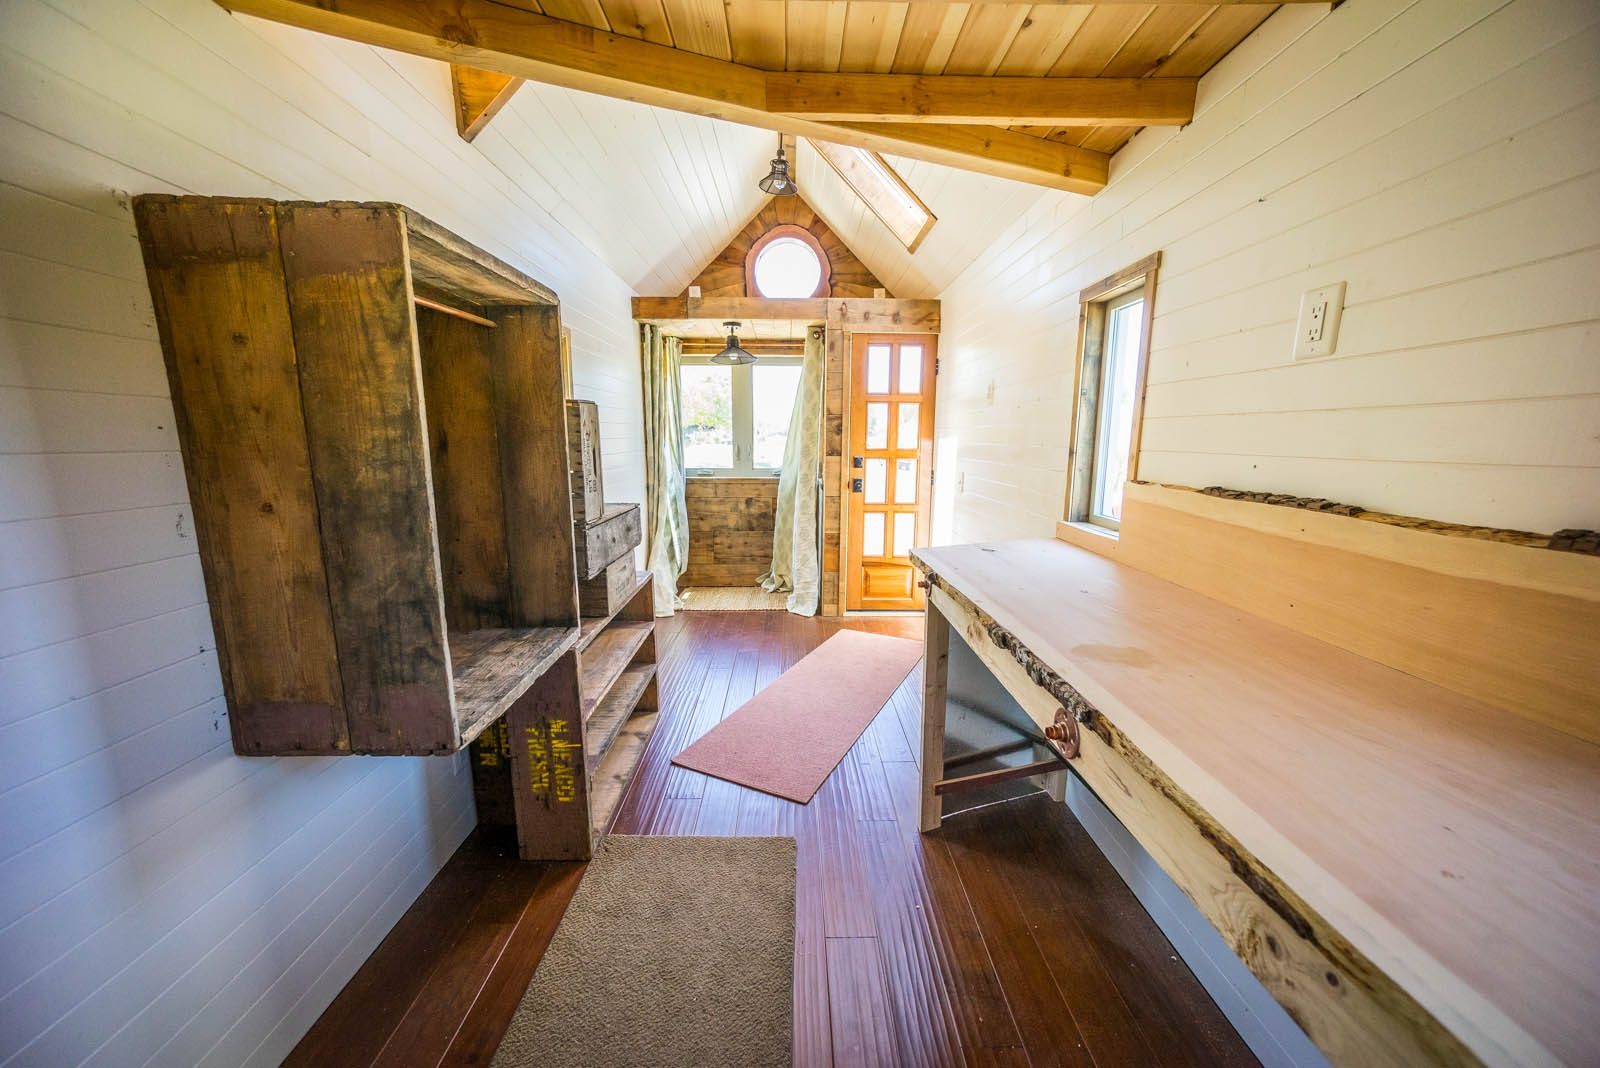 Tiny house giant journey interior tiny house giant journey for Tiny house interior ideas